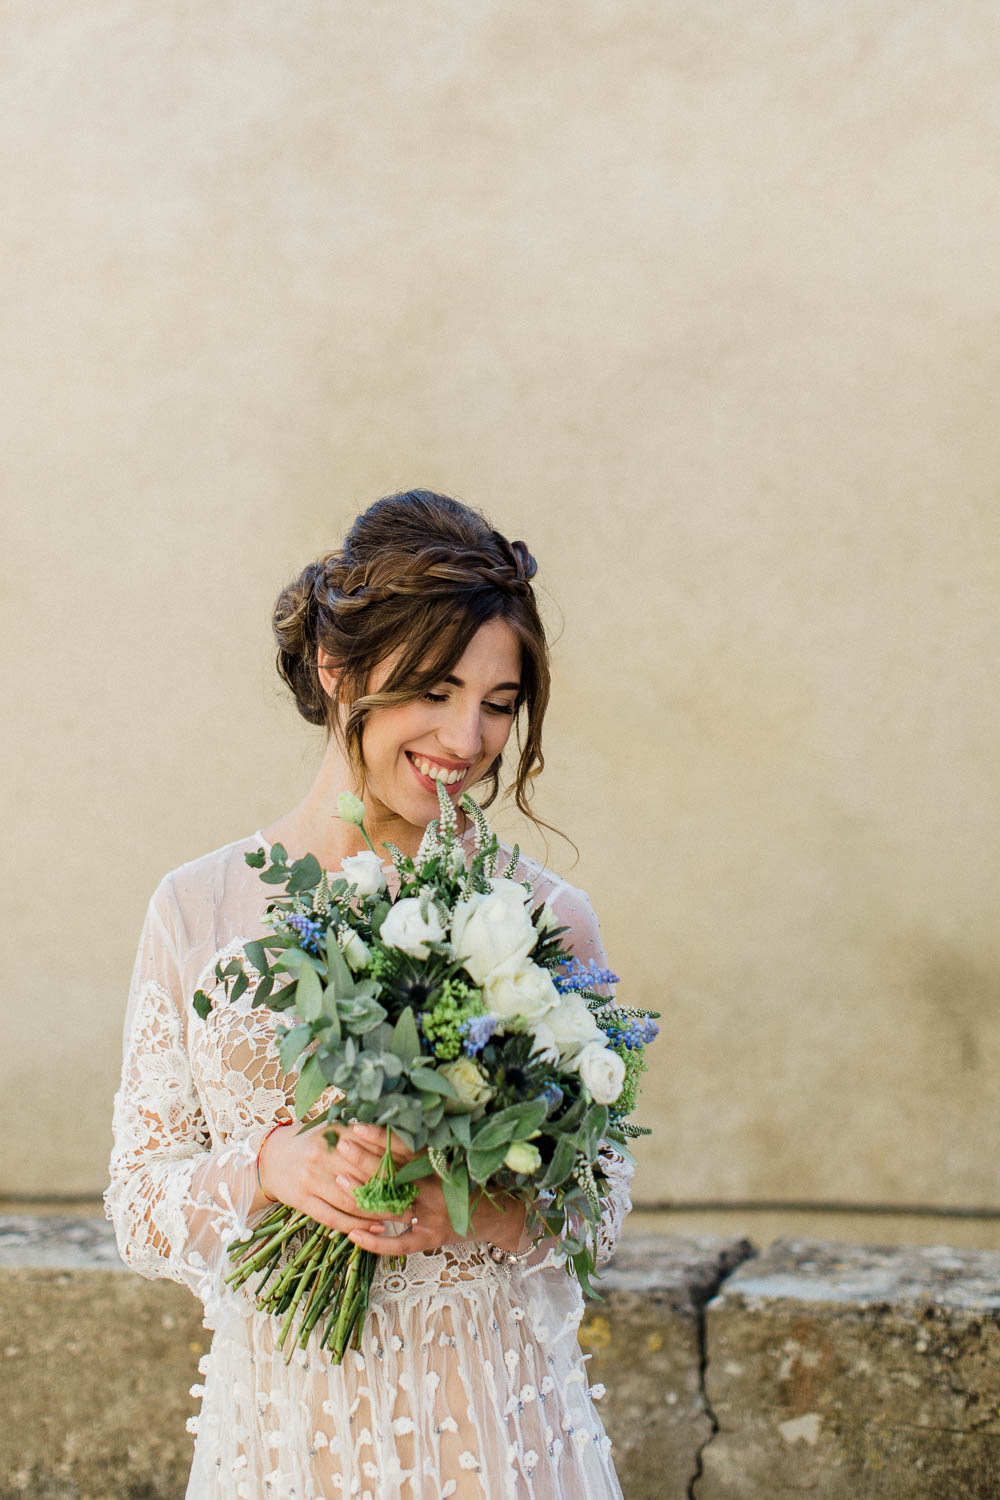 castellabate italy wedding photography-19-Edit.jpg